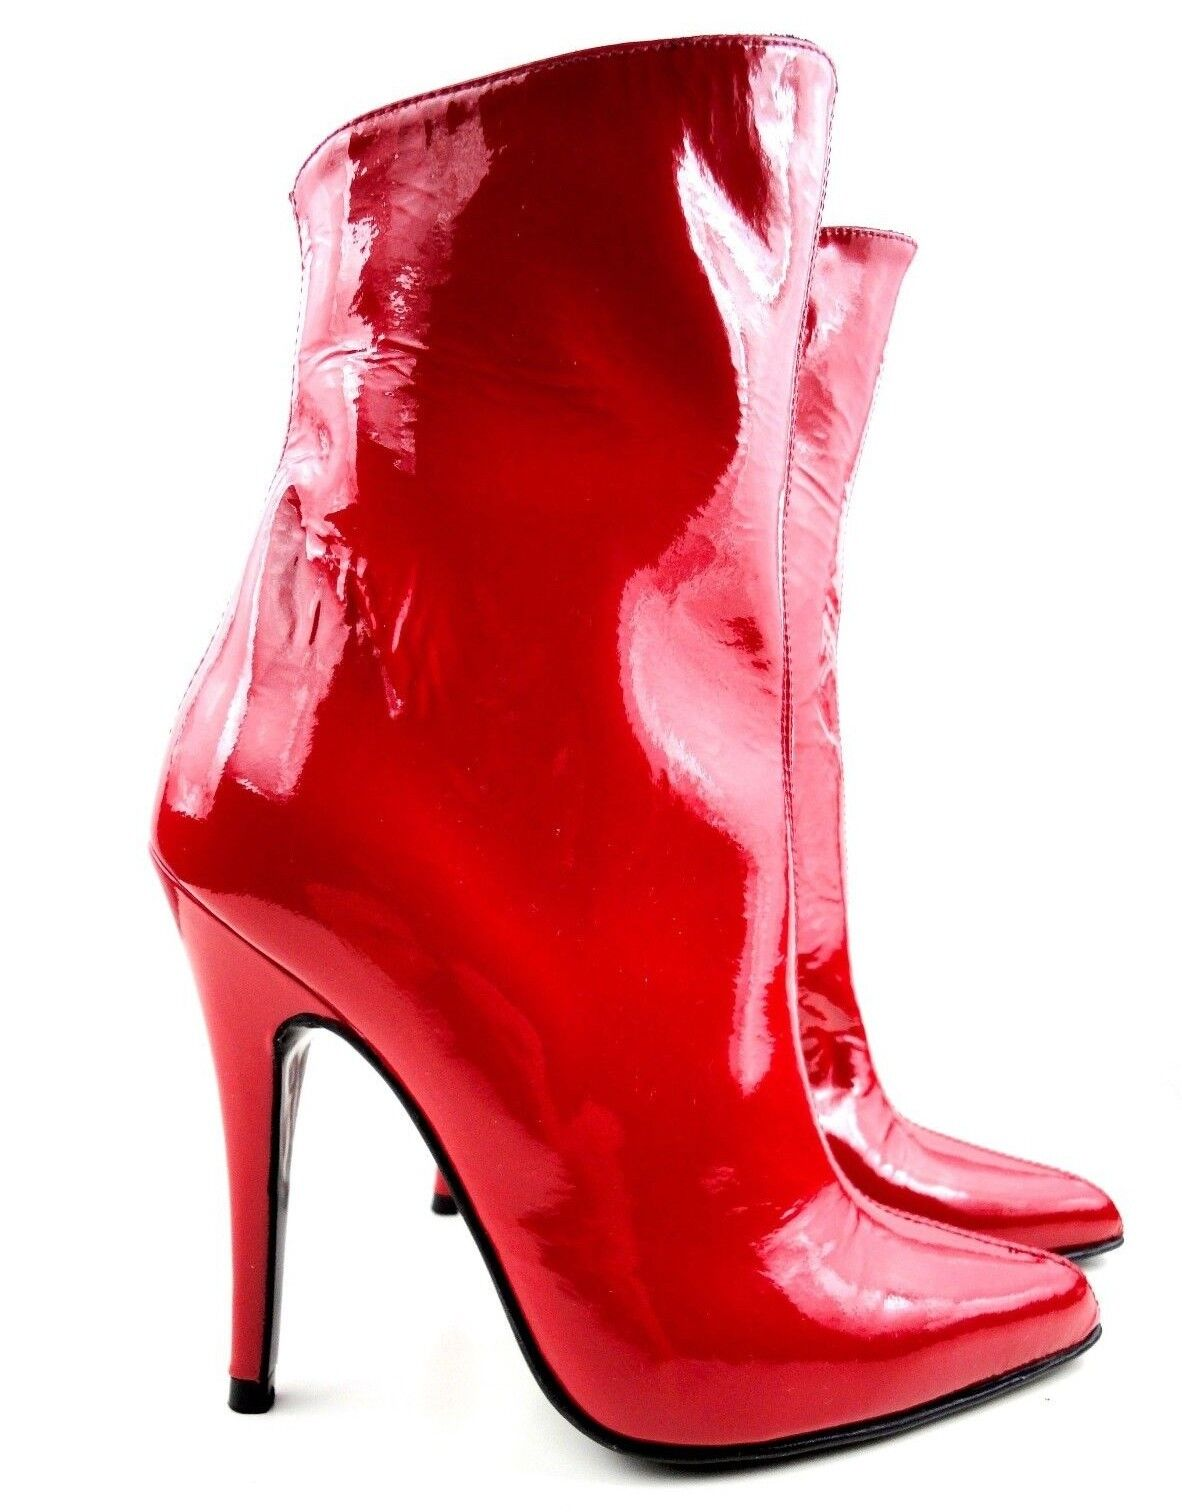 GIOHEL ANKLE CUSTOM BOOTIES BOOTS STIEFEL RED STIEFEL PATENT LEATHER ROT RED STIEFEL 44 1fa3dd